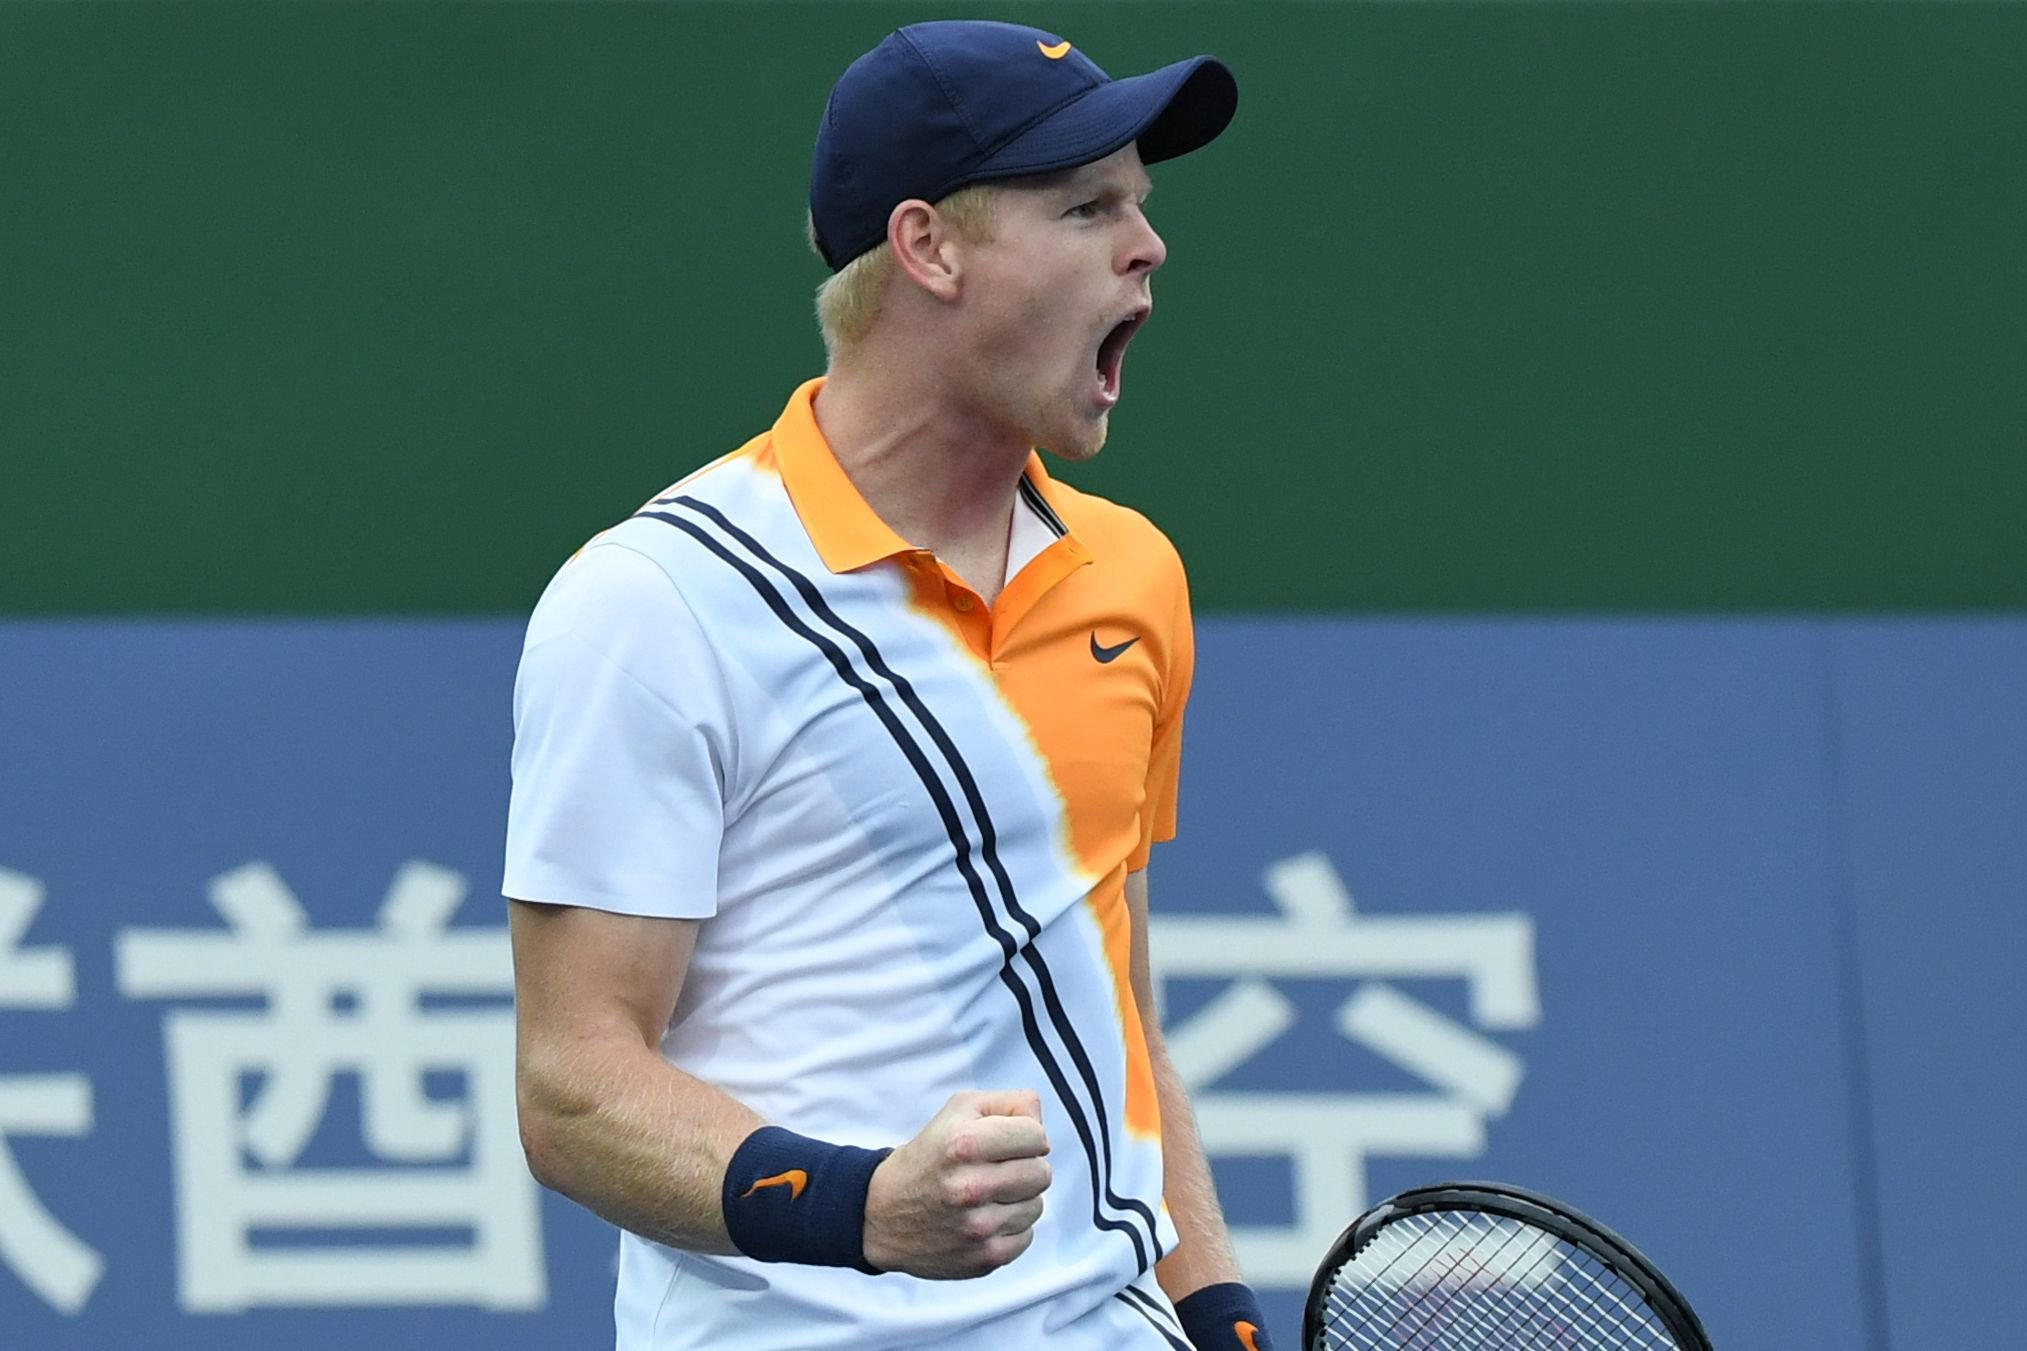 Tearful Kyle Edmund wins first ATP title as he defeats Gael Monfils at European Open